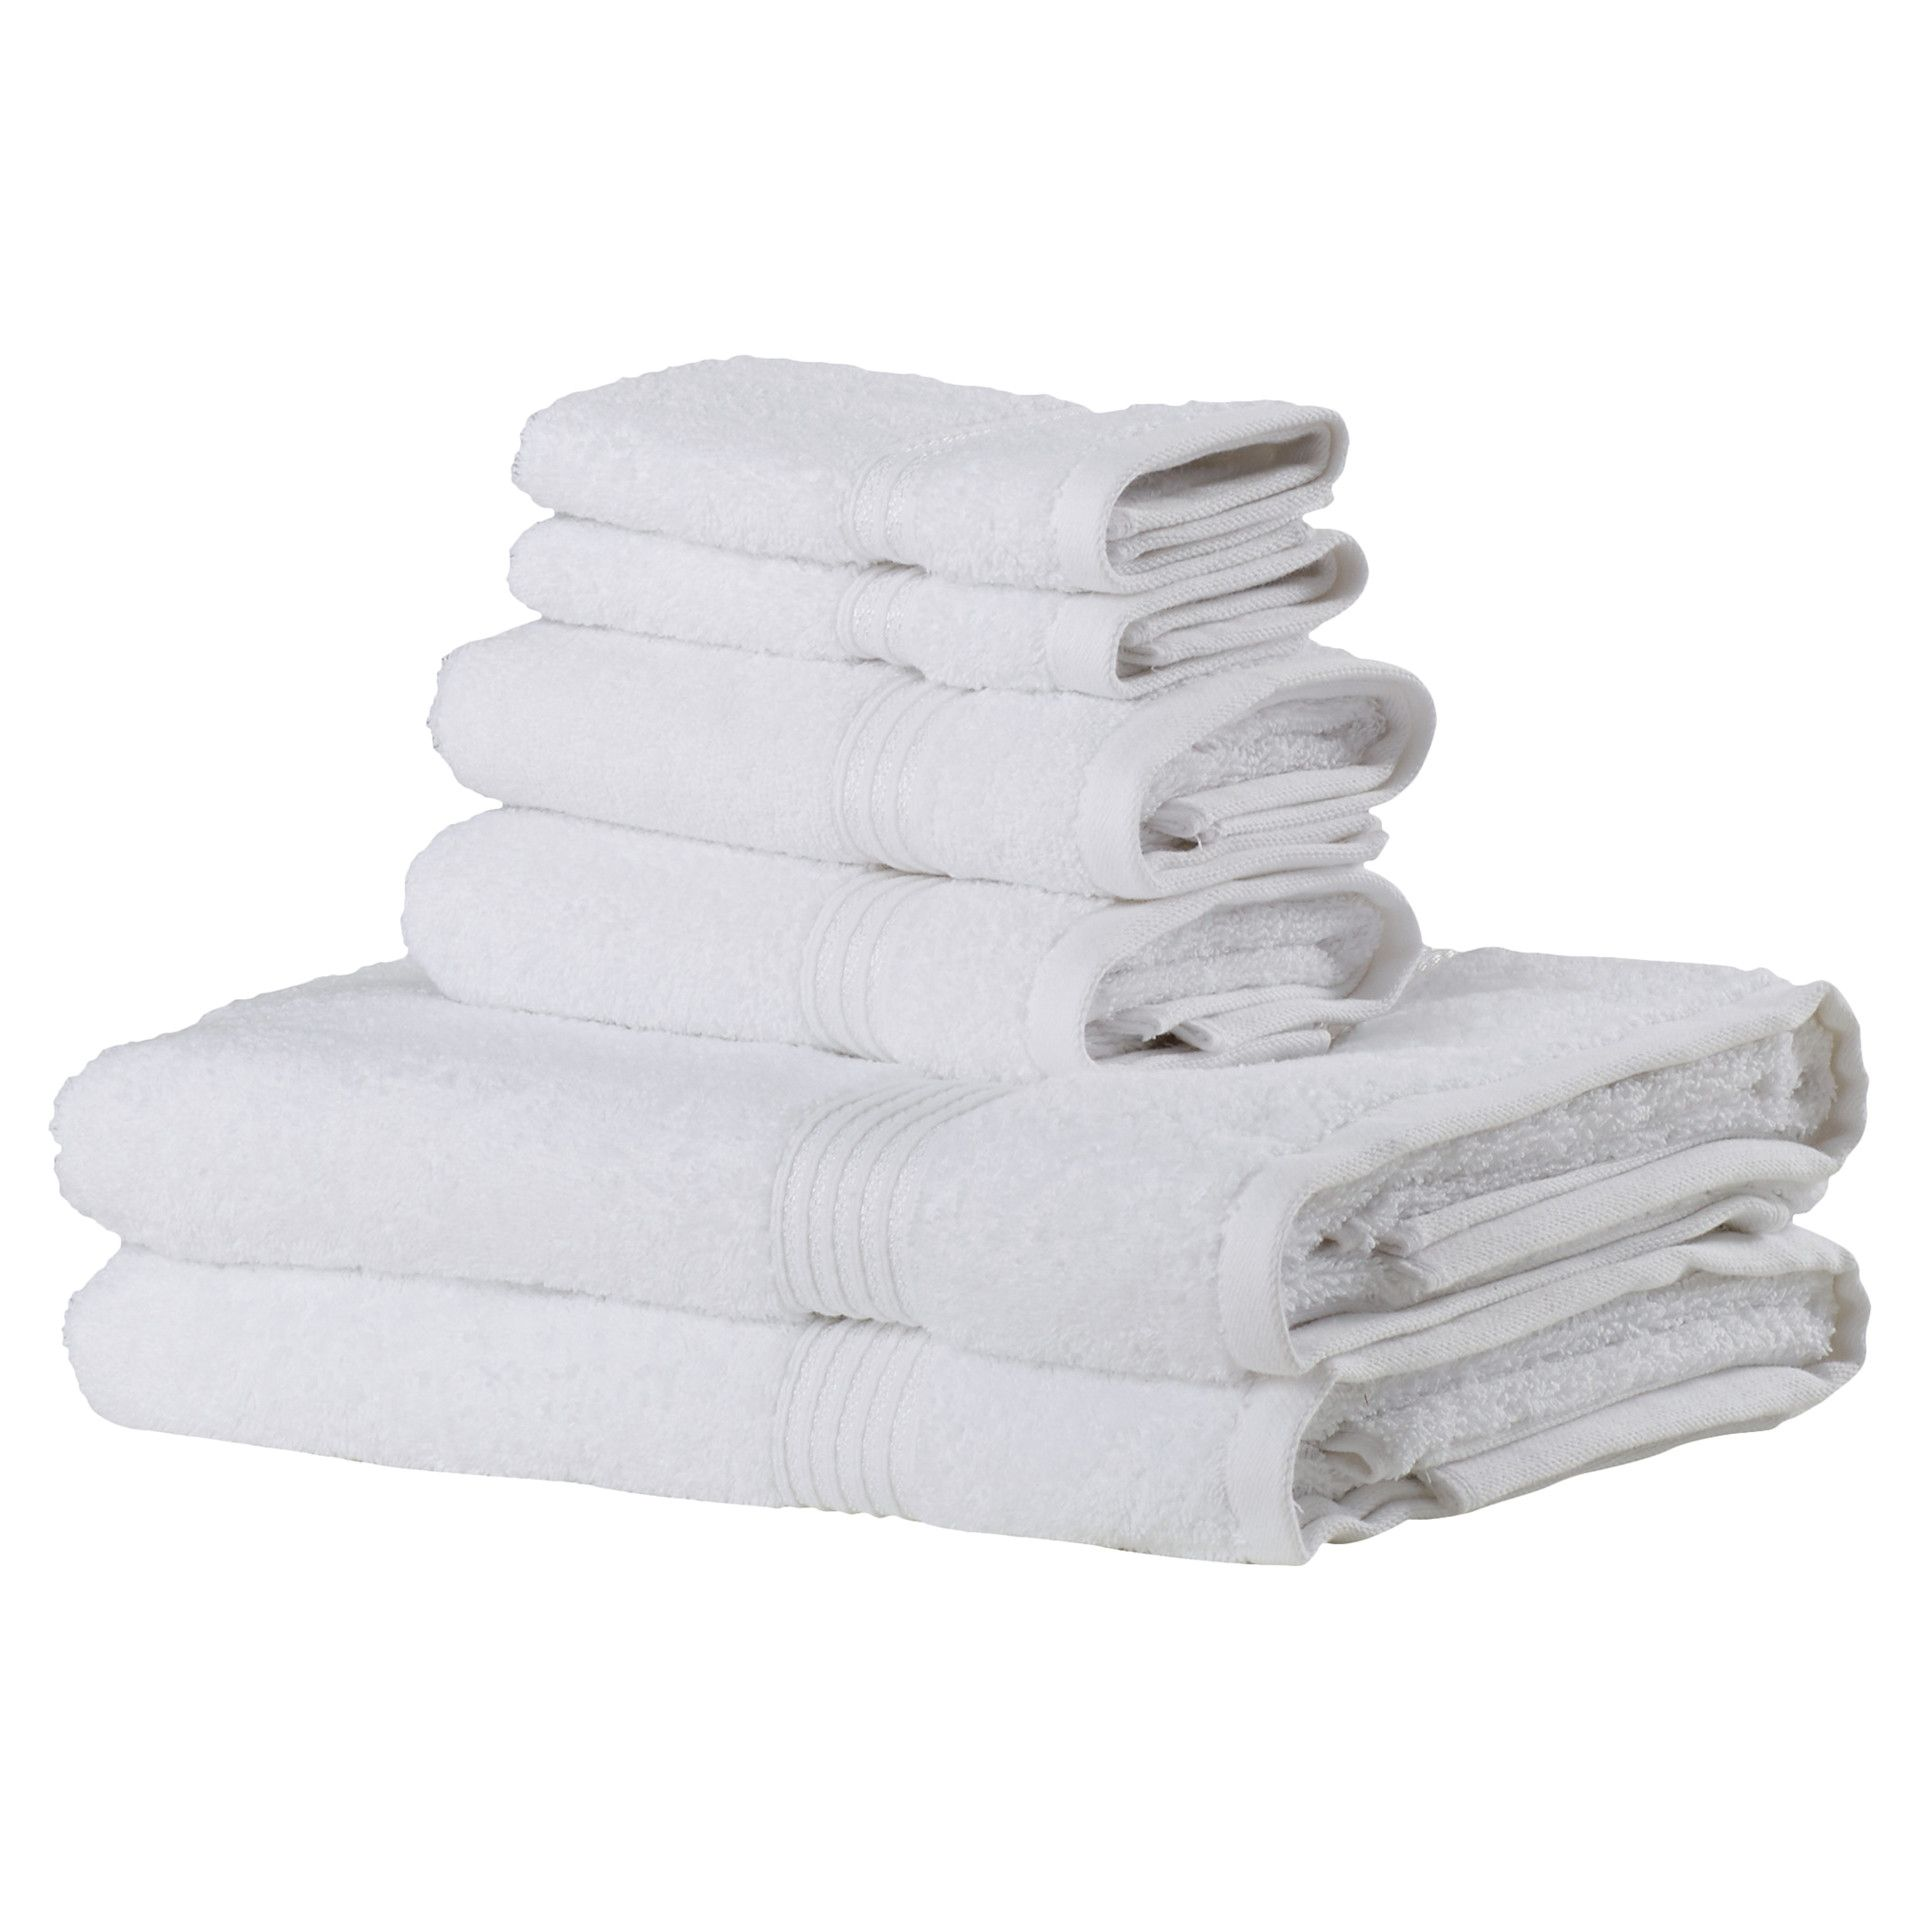 Orla 6 Piece Egyptian Cotton Towel Set White Turkish Towels